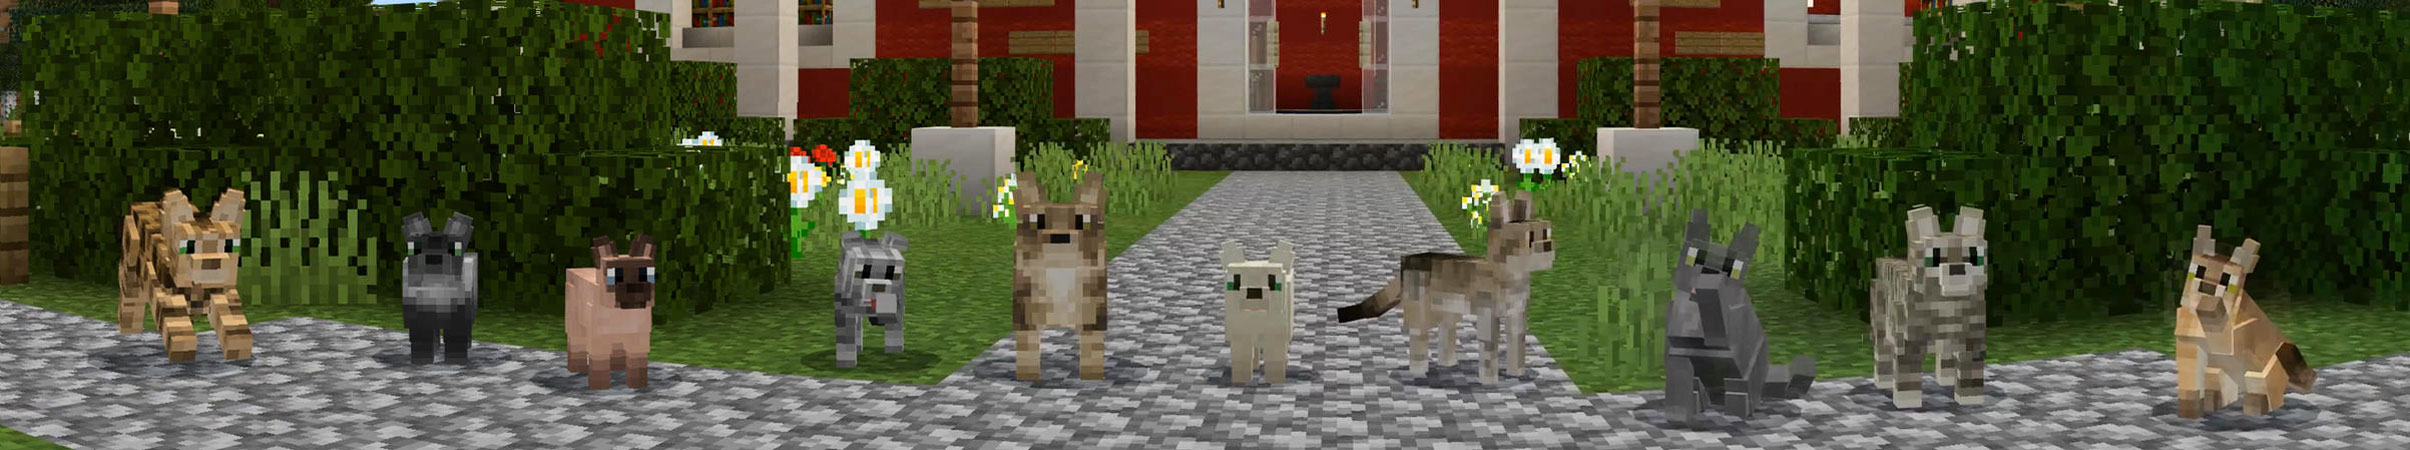 Pets Cats In Minecraft Marketplace Minecraft